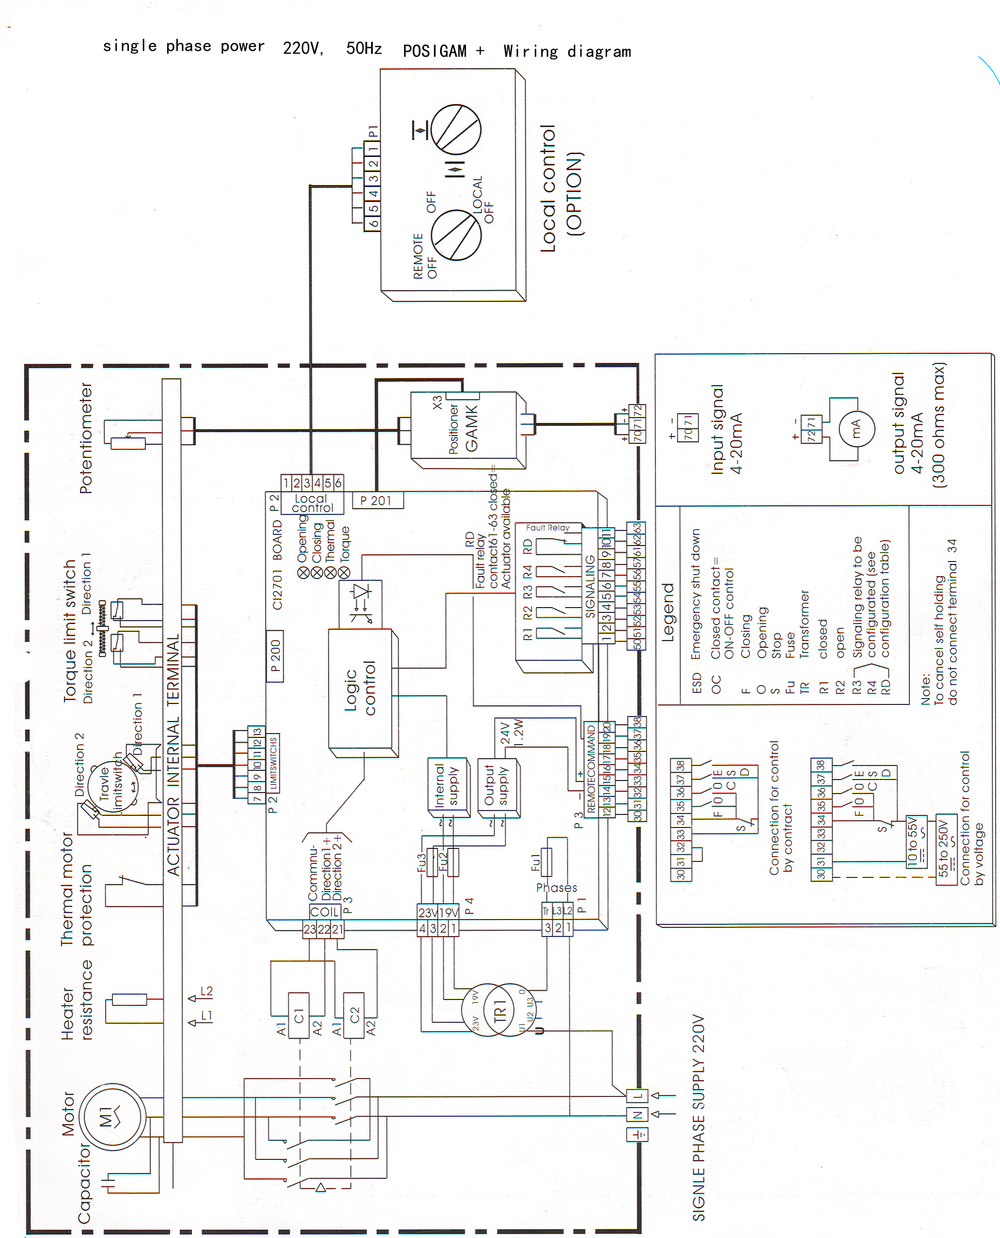 How To Install A Hardwired Smoke Alarm Part 6 moreover I Need The Charging Cable Wiring Diagram I Bought One Without The Wall Connector as well Productshow furthermore Er diagram besides Pump Start Relay Connect Power Source. on ac wiring diagram